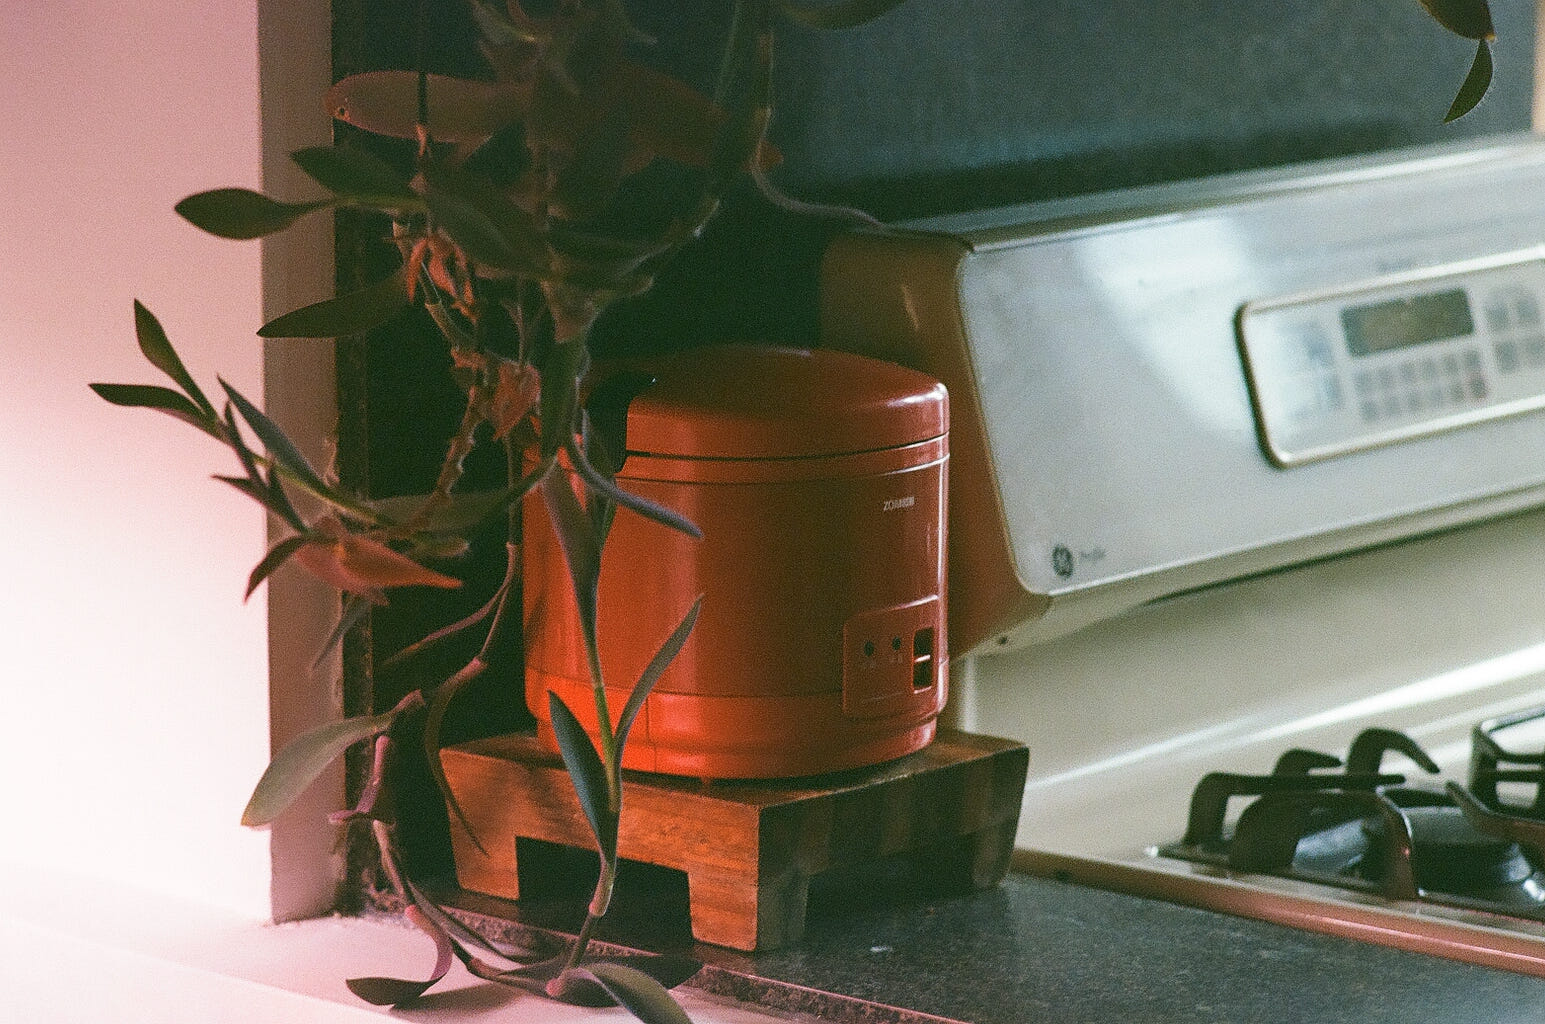 A red rice cooker sits on a small, wooden pallet, itself on a laminate countertop. In front hangs a purple and green wandering Jew. Behind, a gas stovetop.